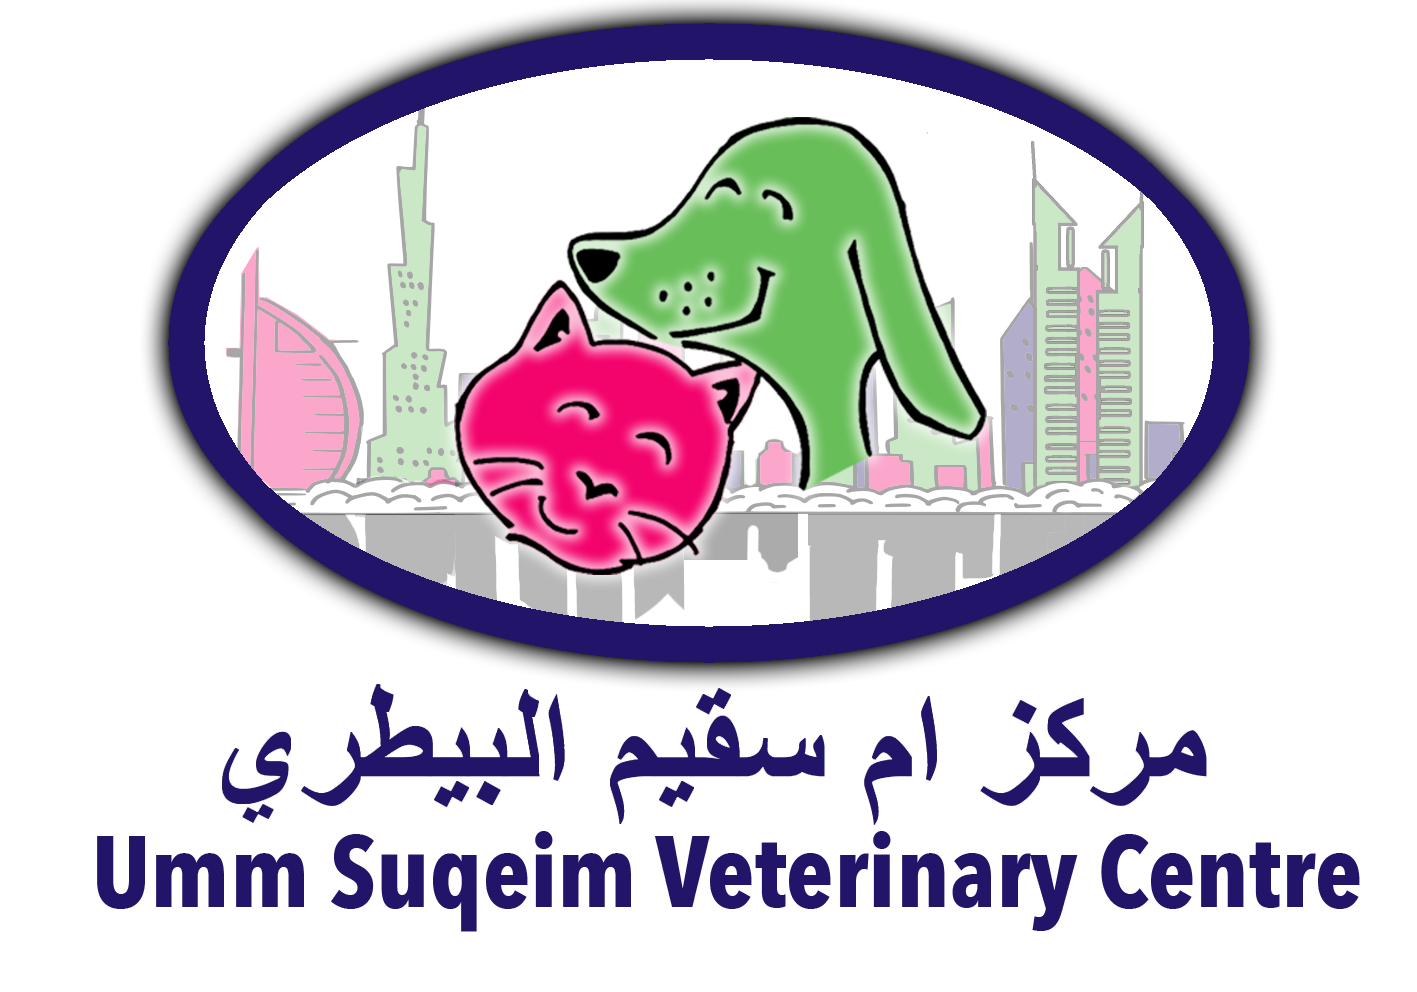 Umm Suqeim Veterinary Centre - 24 Hour Vets in Dubai